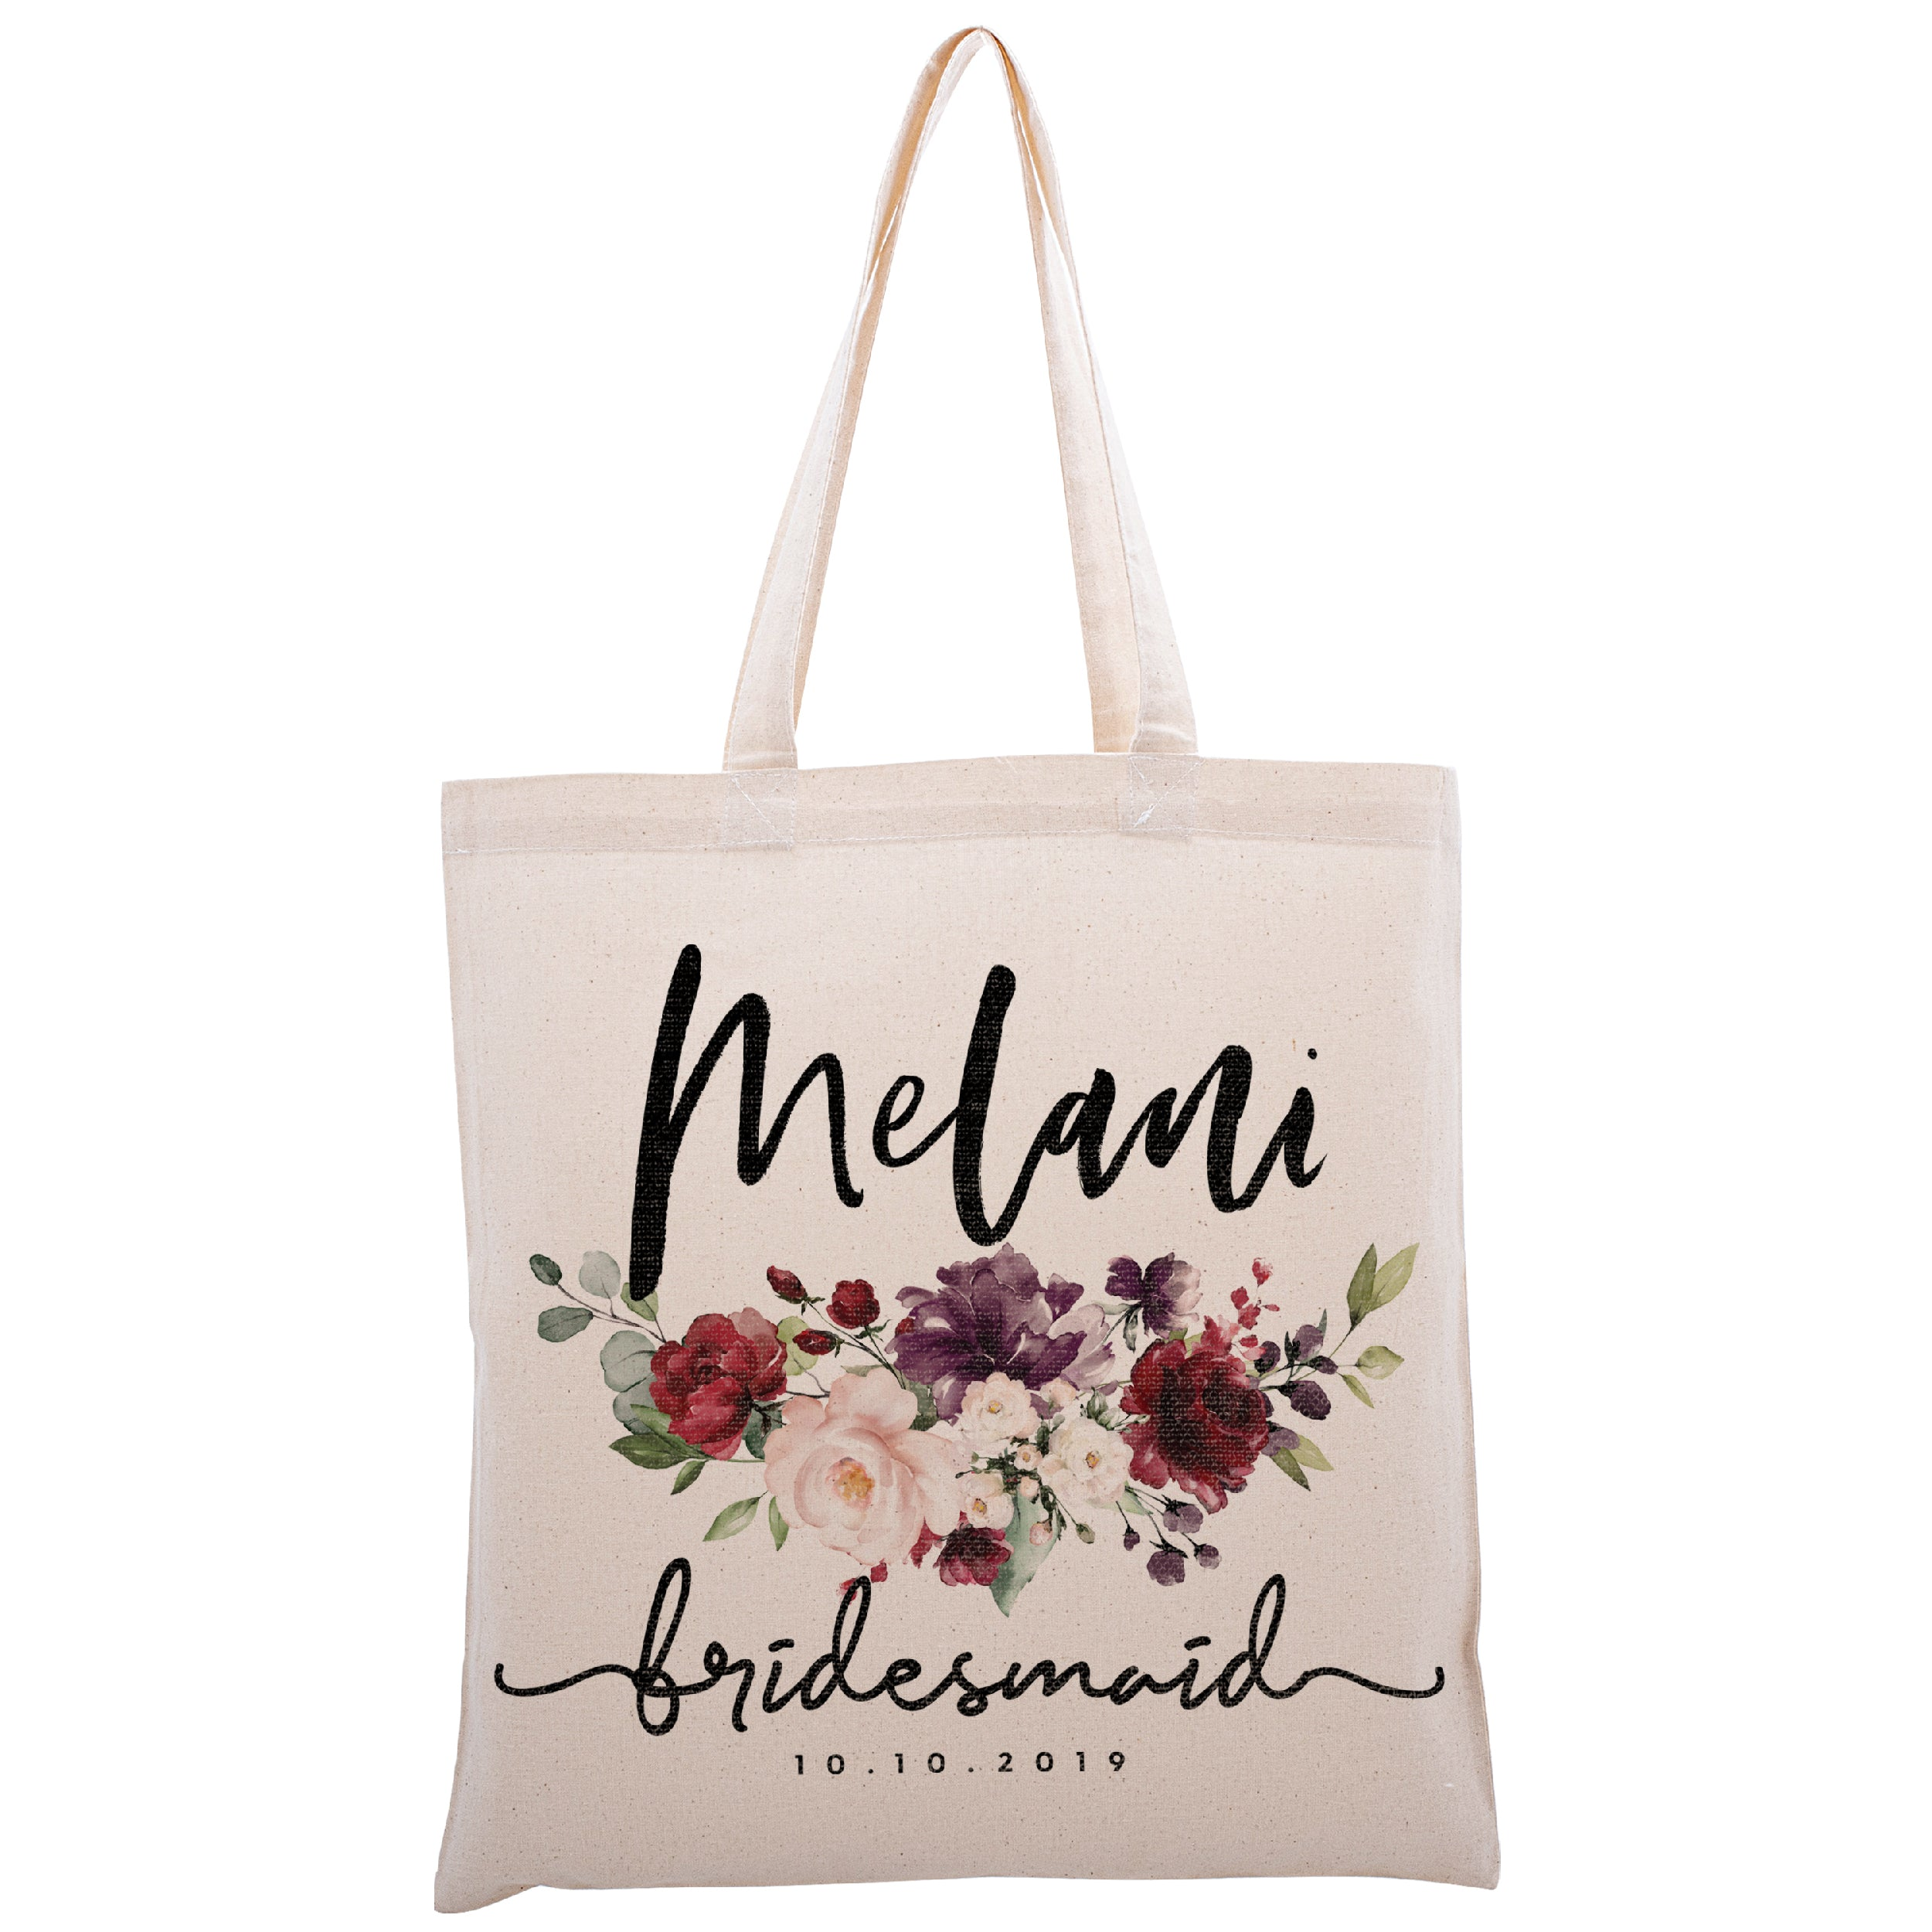 Wedding Floral Tote Bag Mother of the Bride Tote Bag Mother of Bride Bag Wedding Tote Bag Bridal Tote Bag Wedding Bag Canvas Tote Bag Bride